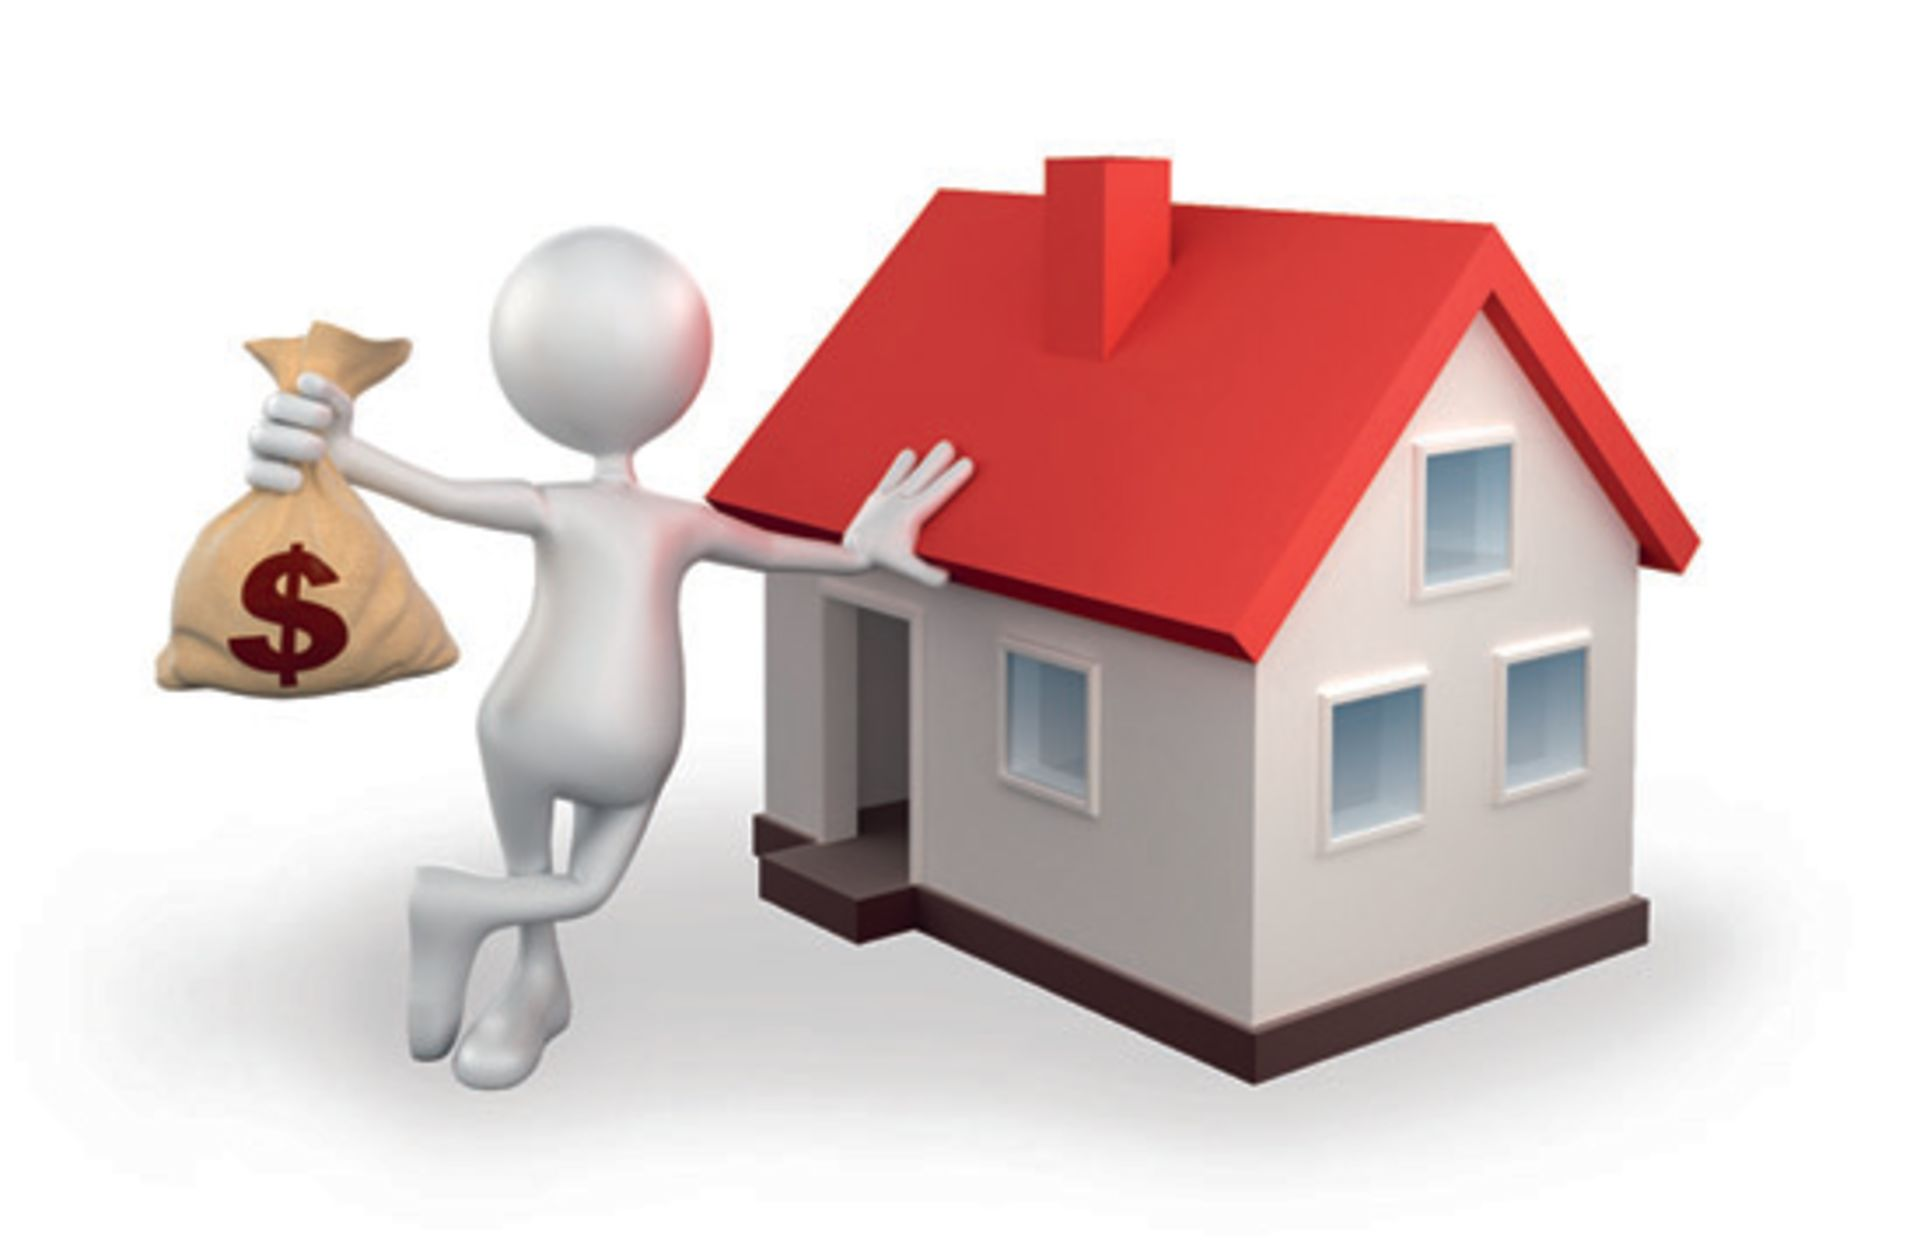 What affects property values?